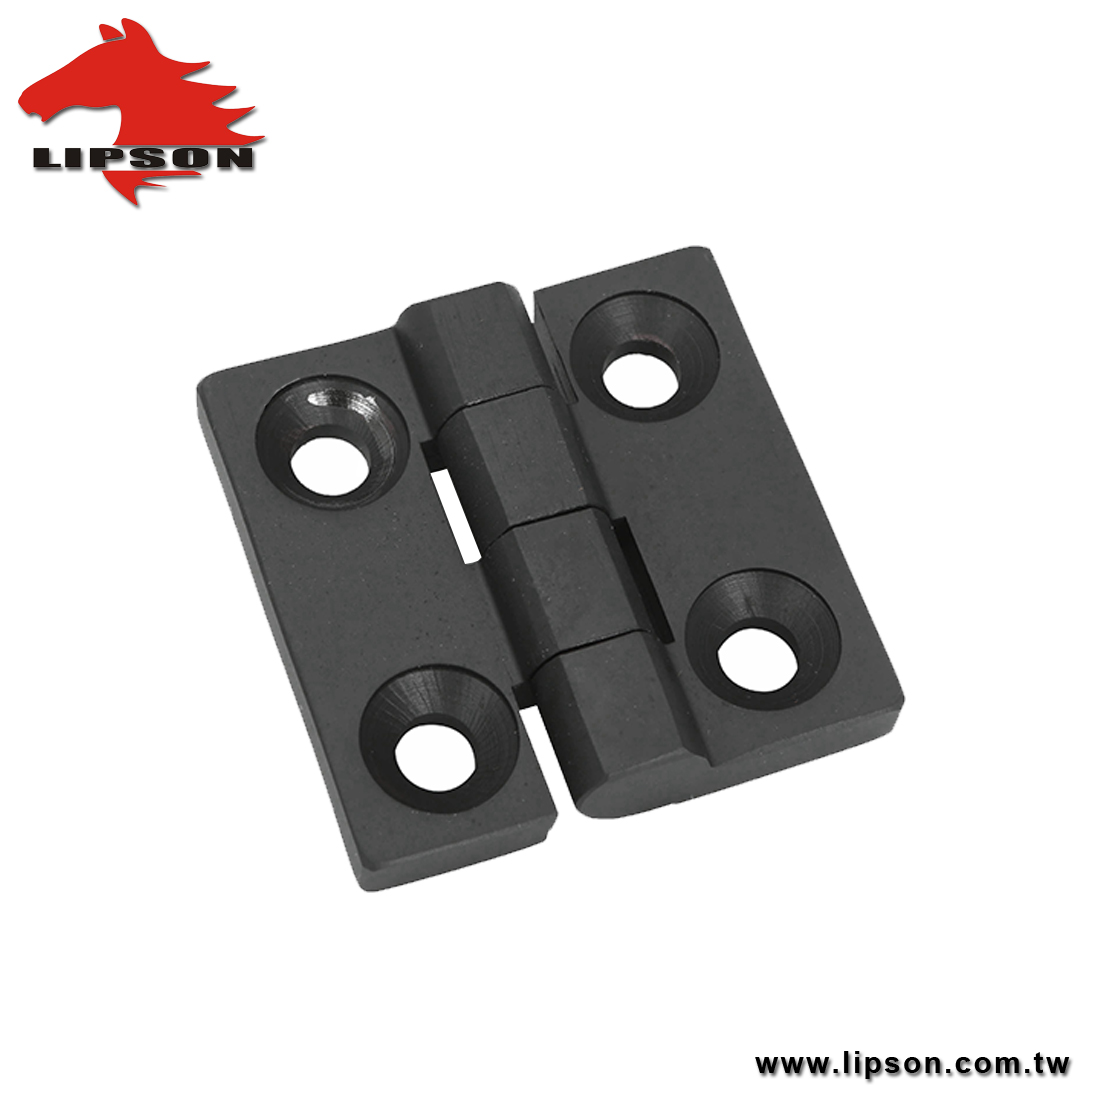 HL-226-2BS Equipment Folding Door Electrical Panel Stainless Surface Mount  Cabinet Hinge, View cabinet hinge, Lipson Product Details from LIPSON